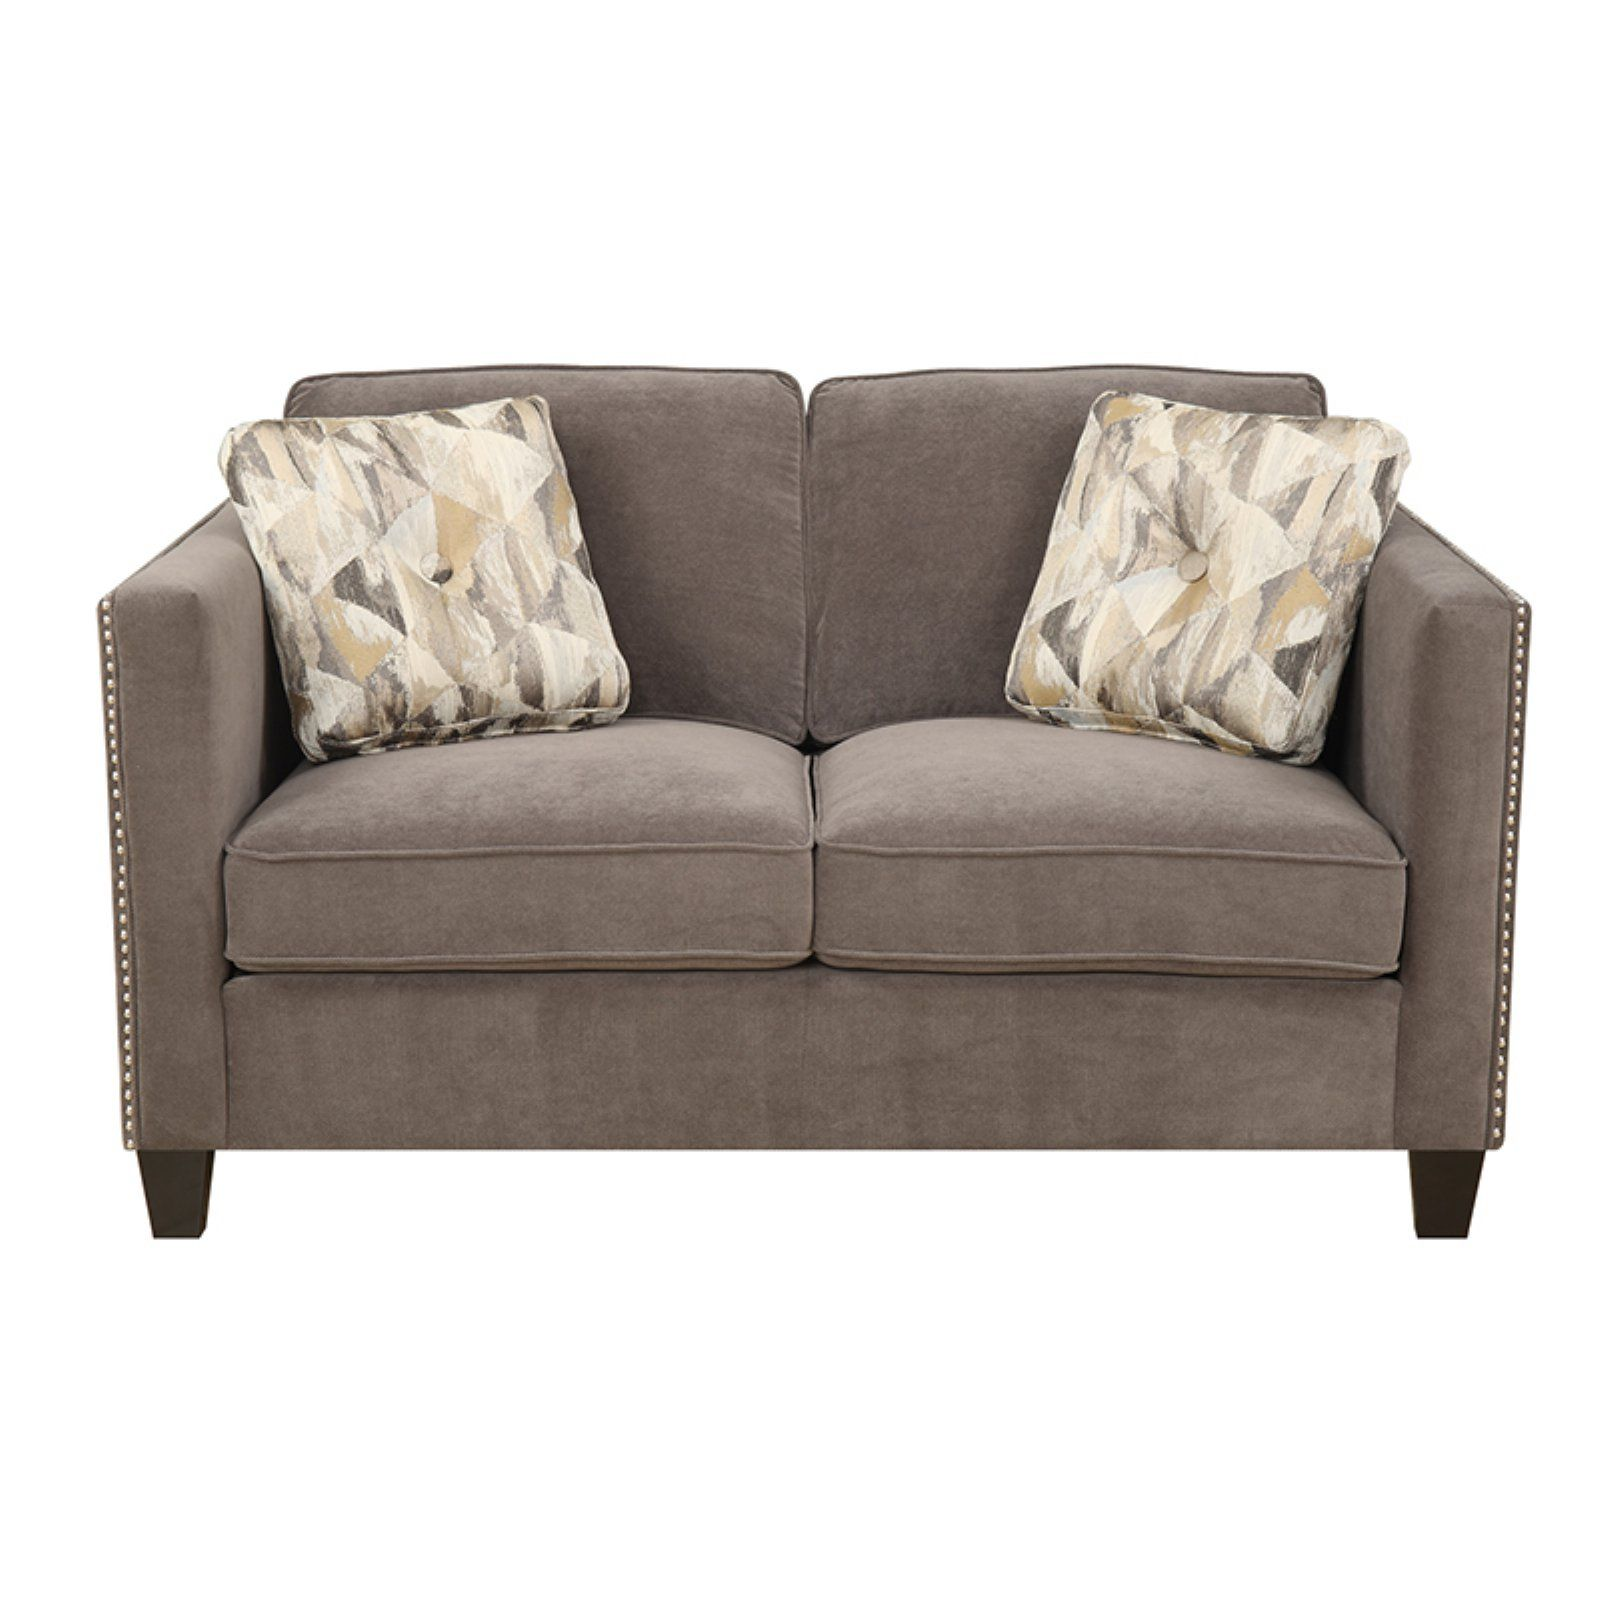 Emelen Sofa And Loveseat Emerald Home Focus Loveseat In 2019 Products Living Room